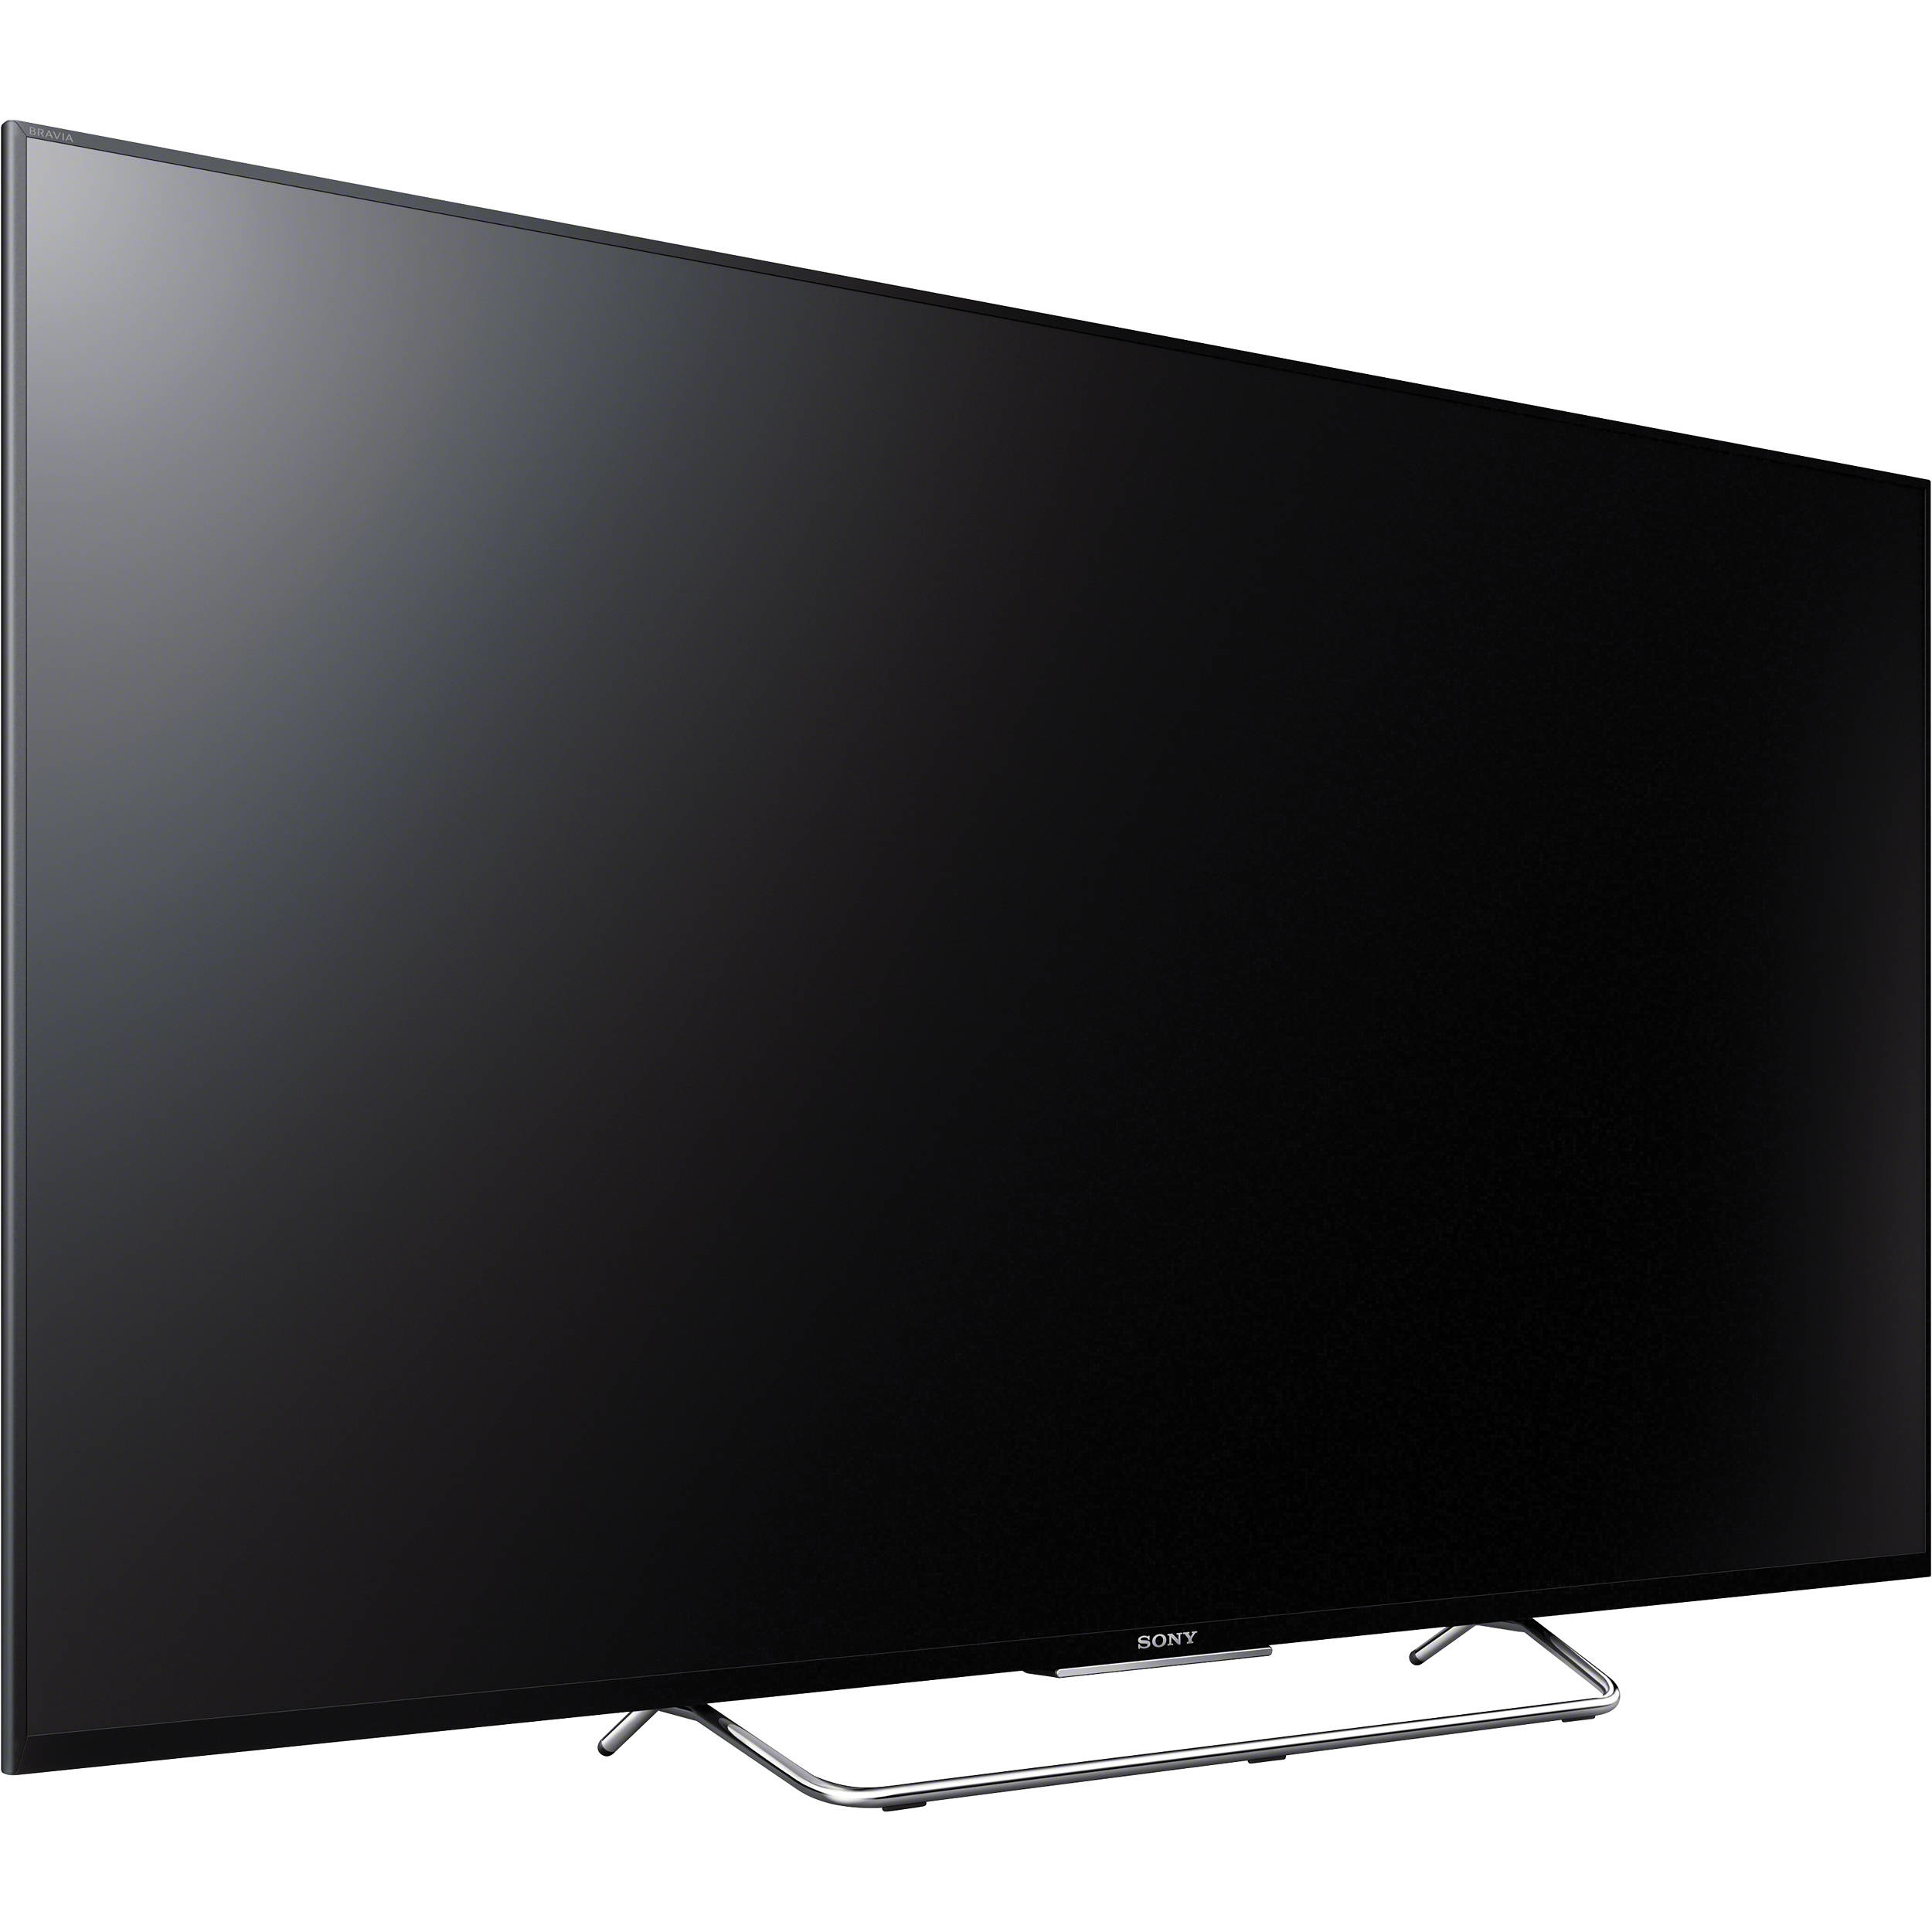 "Sony KDL-55W800C 54.6"" Full HD Compatibilità 3D Smart TV Wi-Fi Nero LED TV"